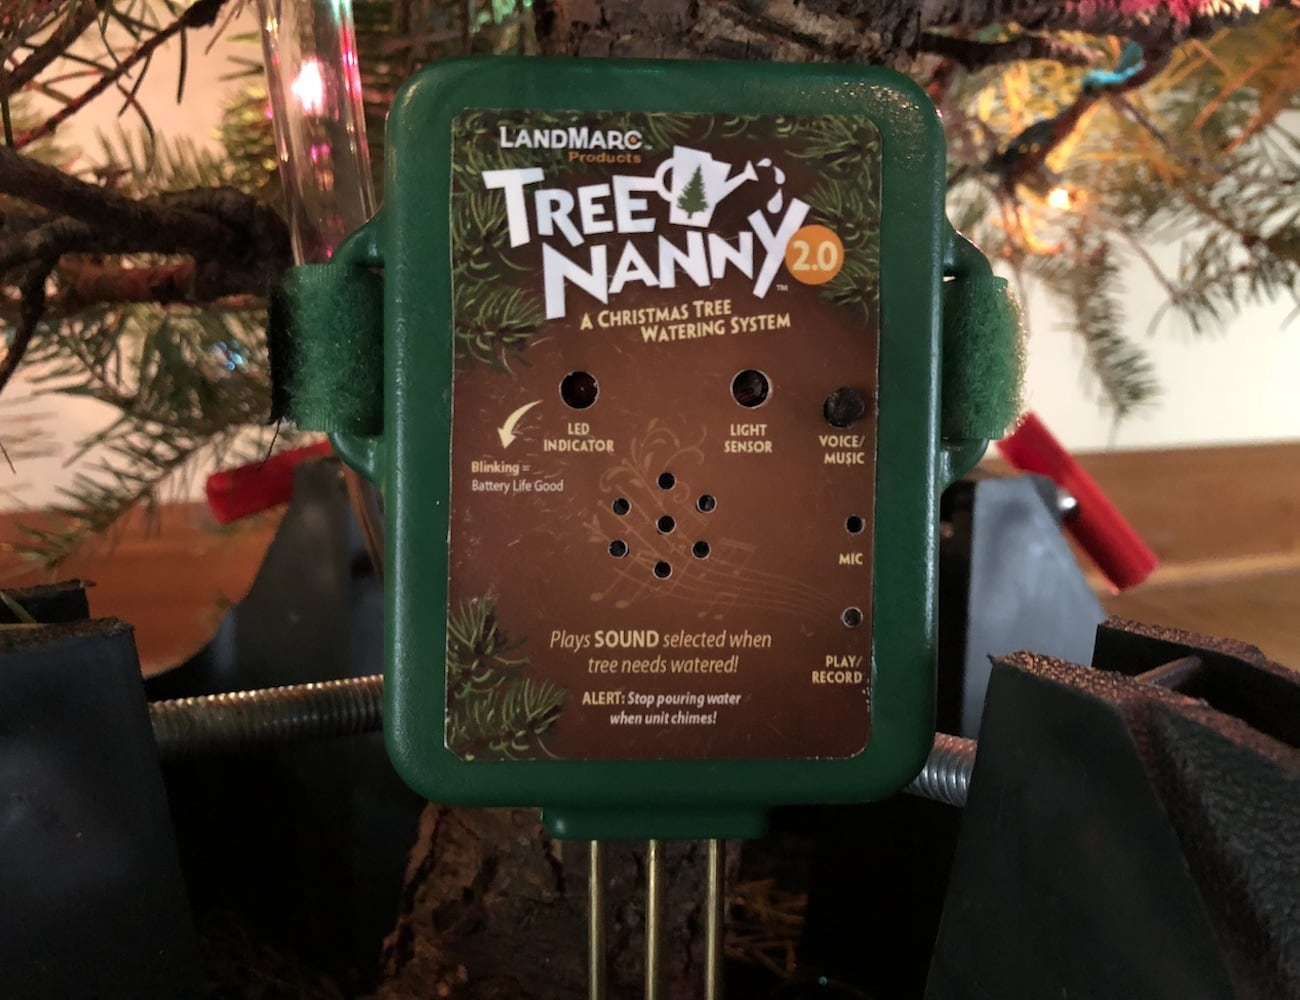 Tree Nanny 2.0 Christmas Tree Watering System